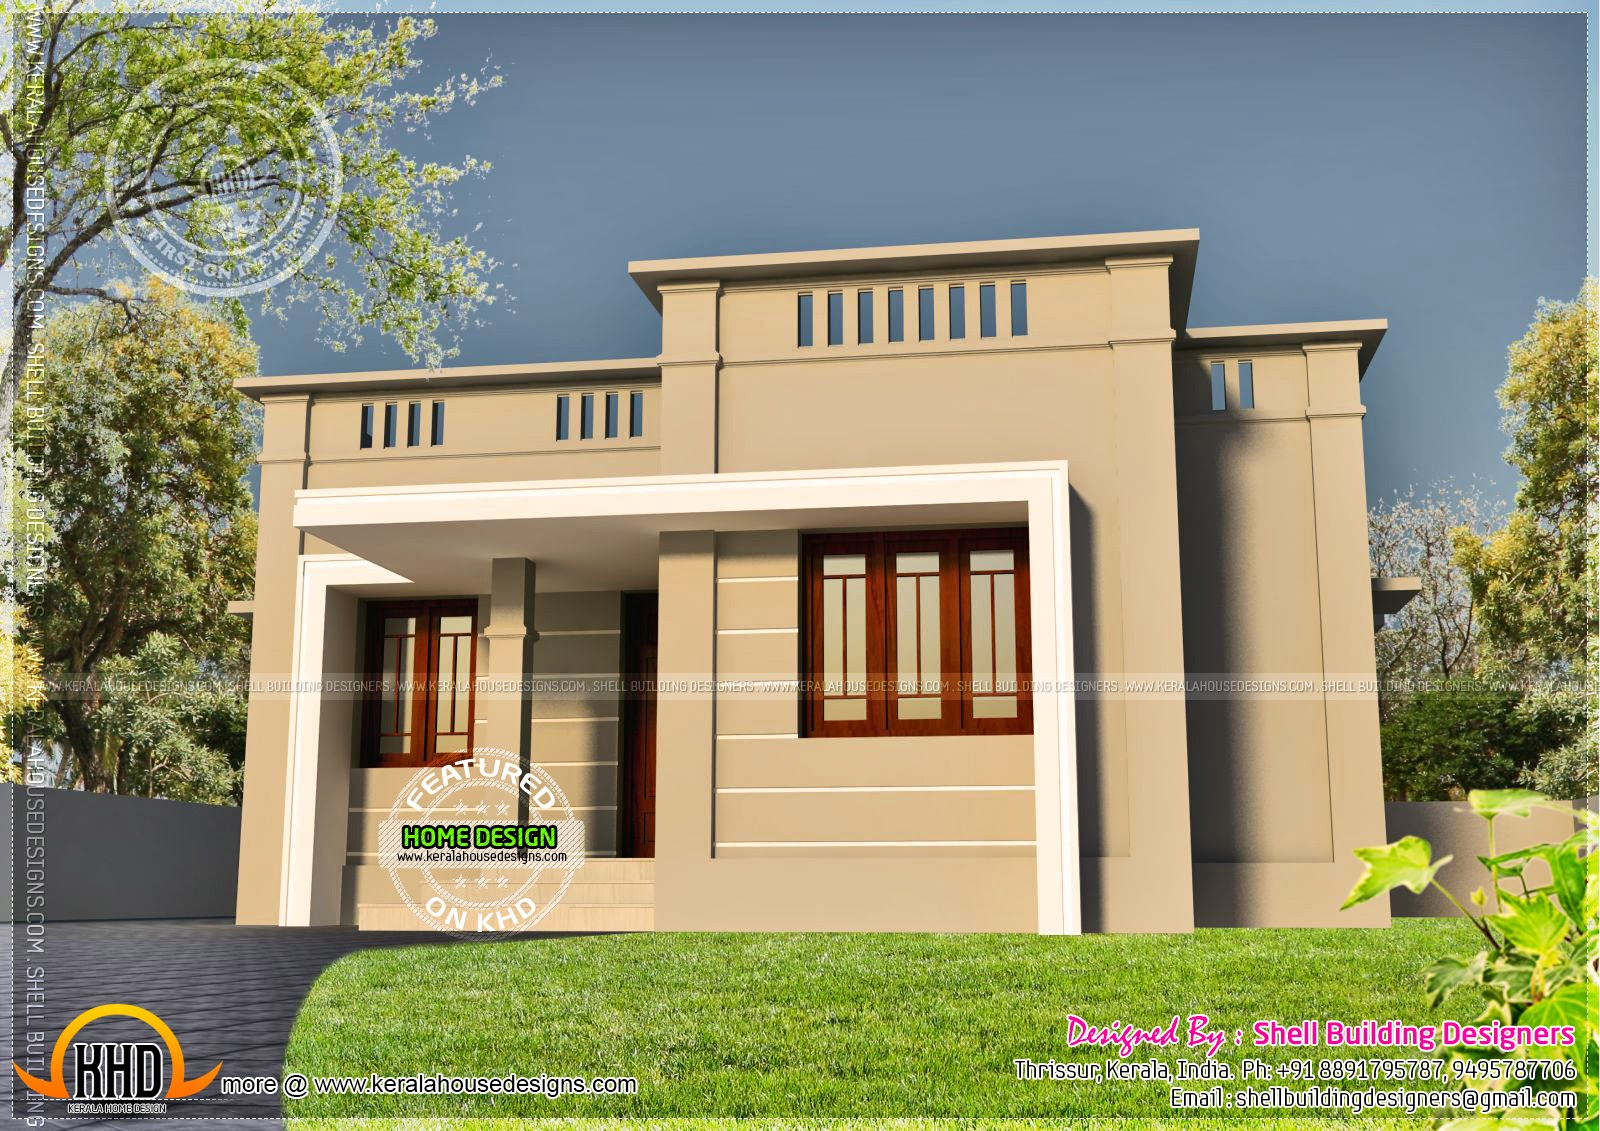 Very small house exterior kerala home design and floor plans for Small indian house images